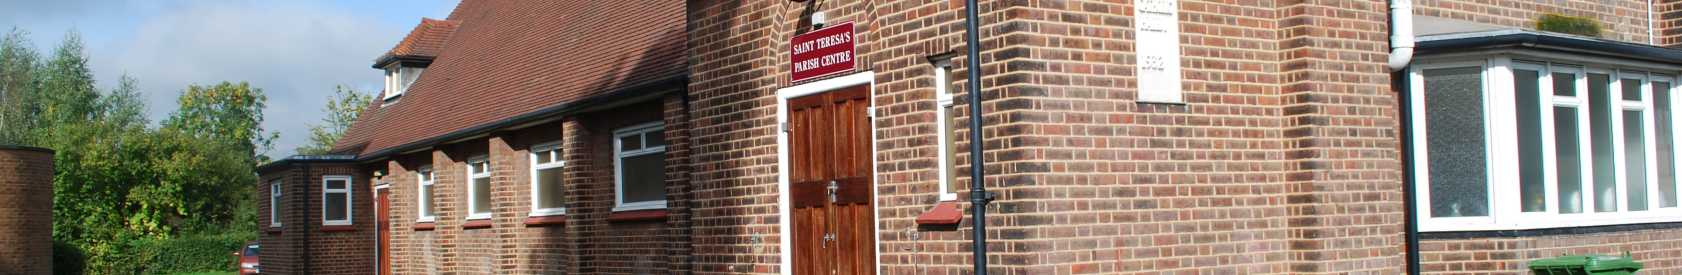 St Teresa's Parish Centre